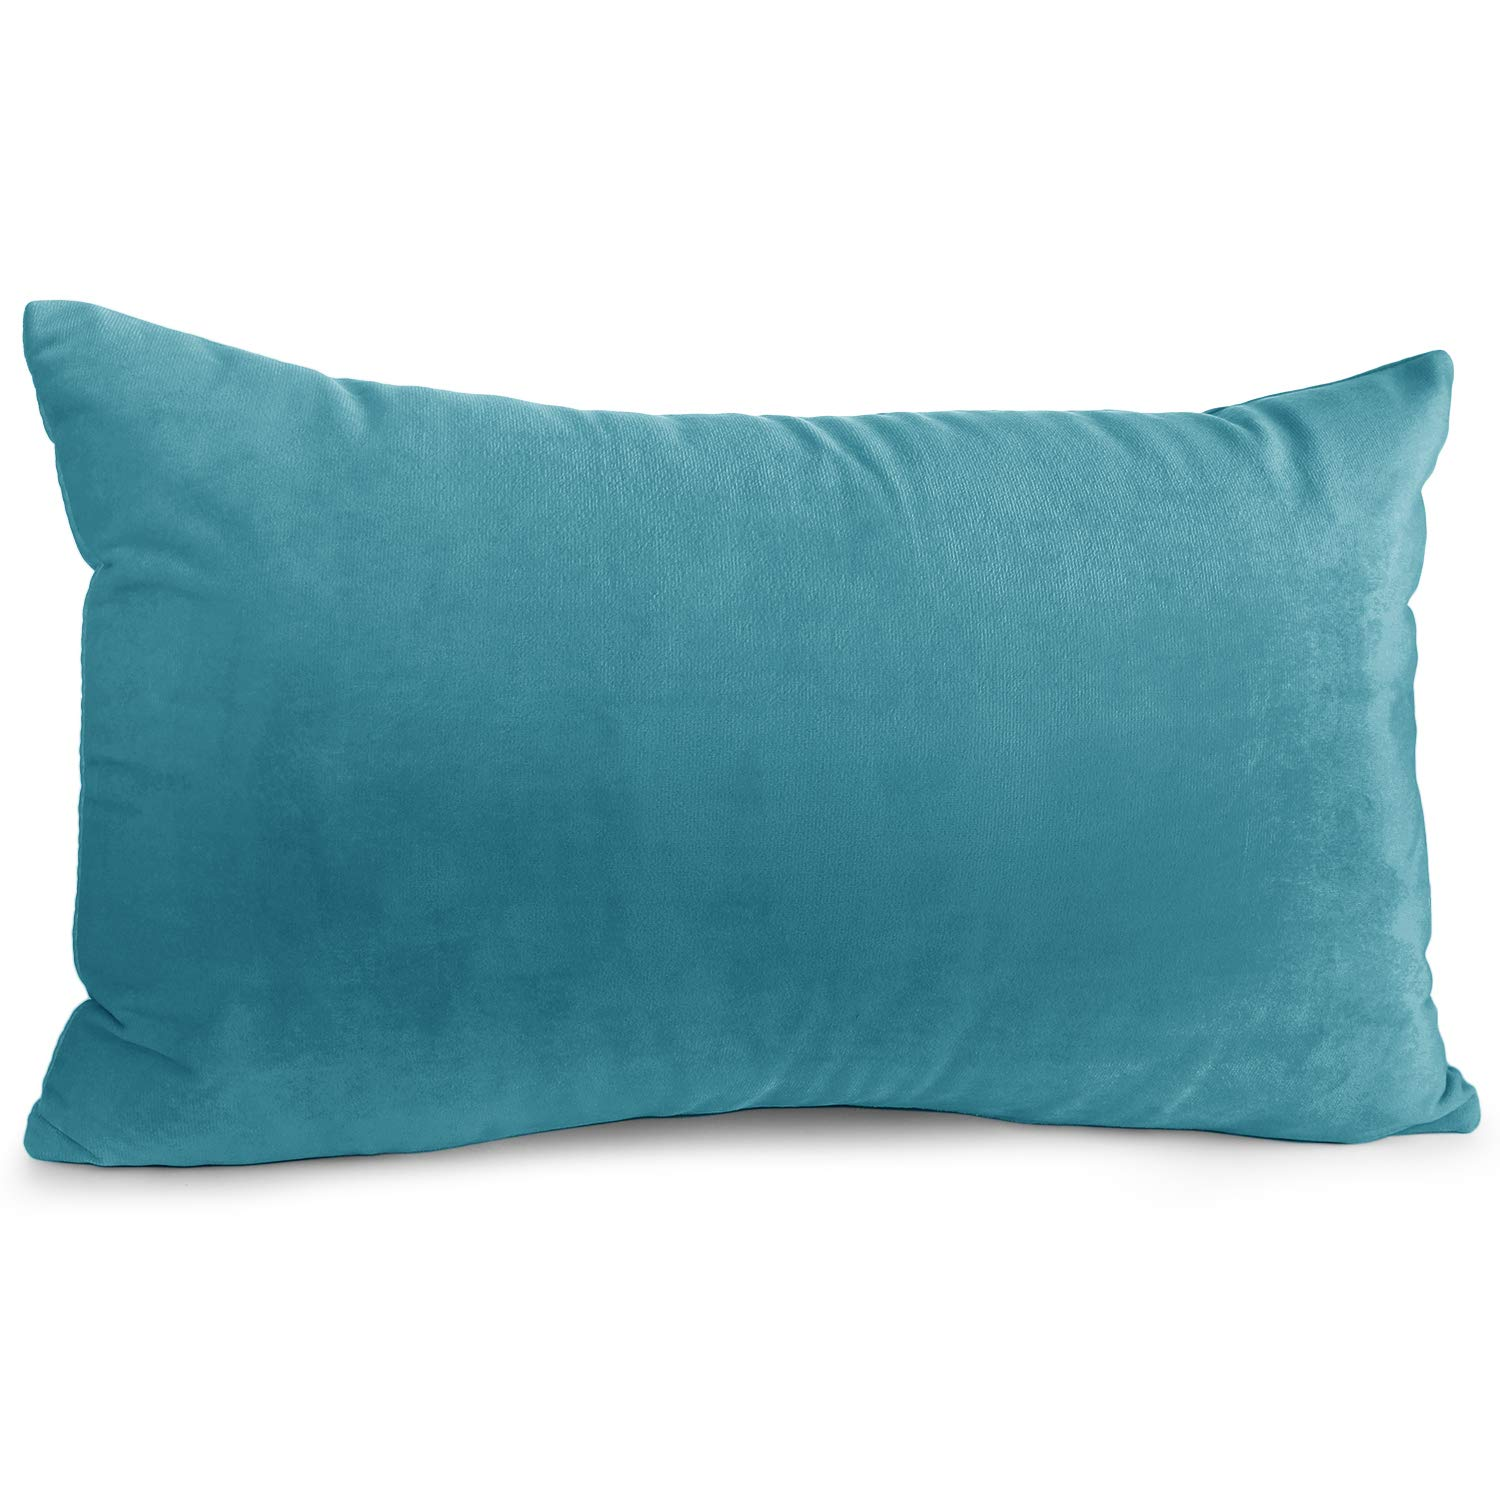 """Nestl Bedding Throw Pillow Cover 12"""" x 20"""" Soft Square Decorative Throw Pillow Covers Cozy Velvet Cushion Case for Sofa Couch Bedroom - Teal"""